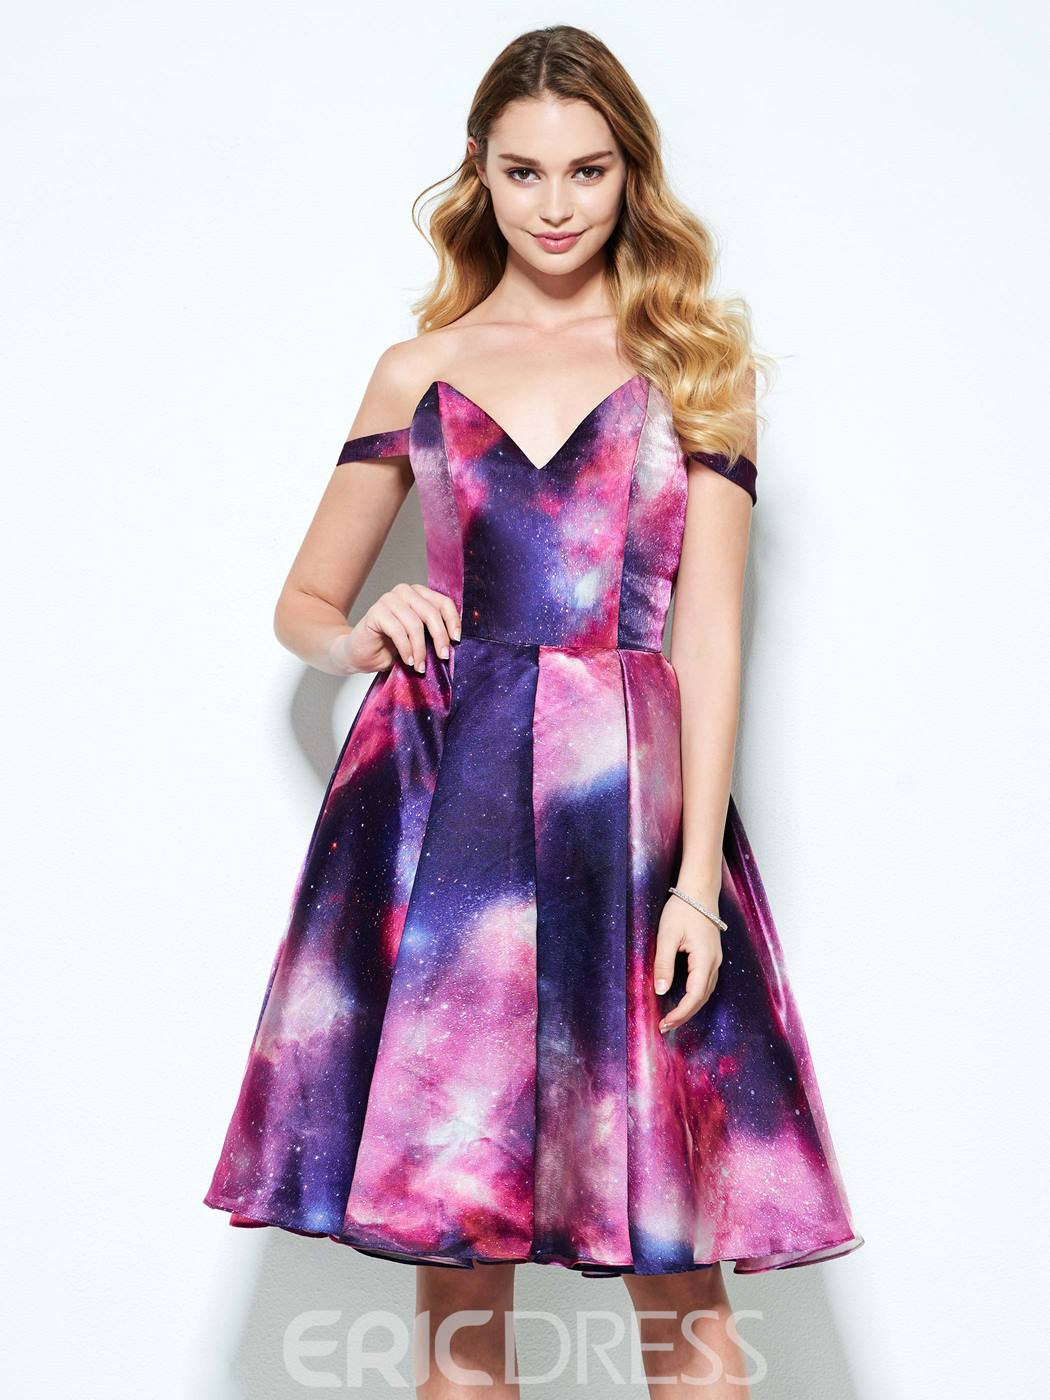 Ericdress a-ligne v-cou Appliques perlant mi-longues Homecoming robe